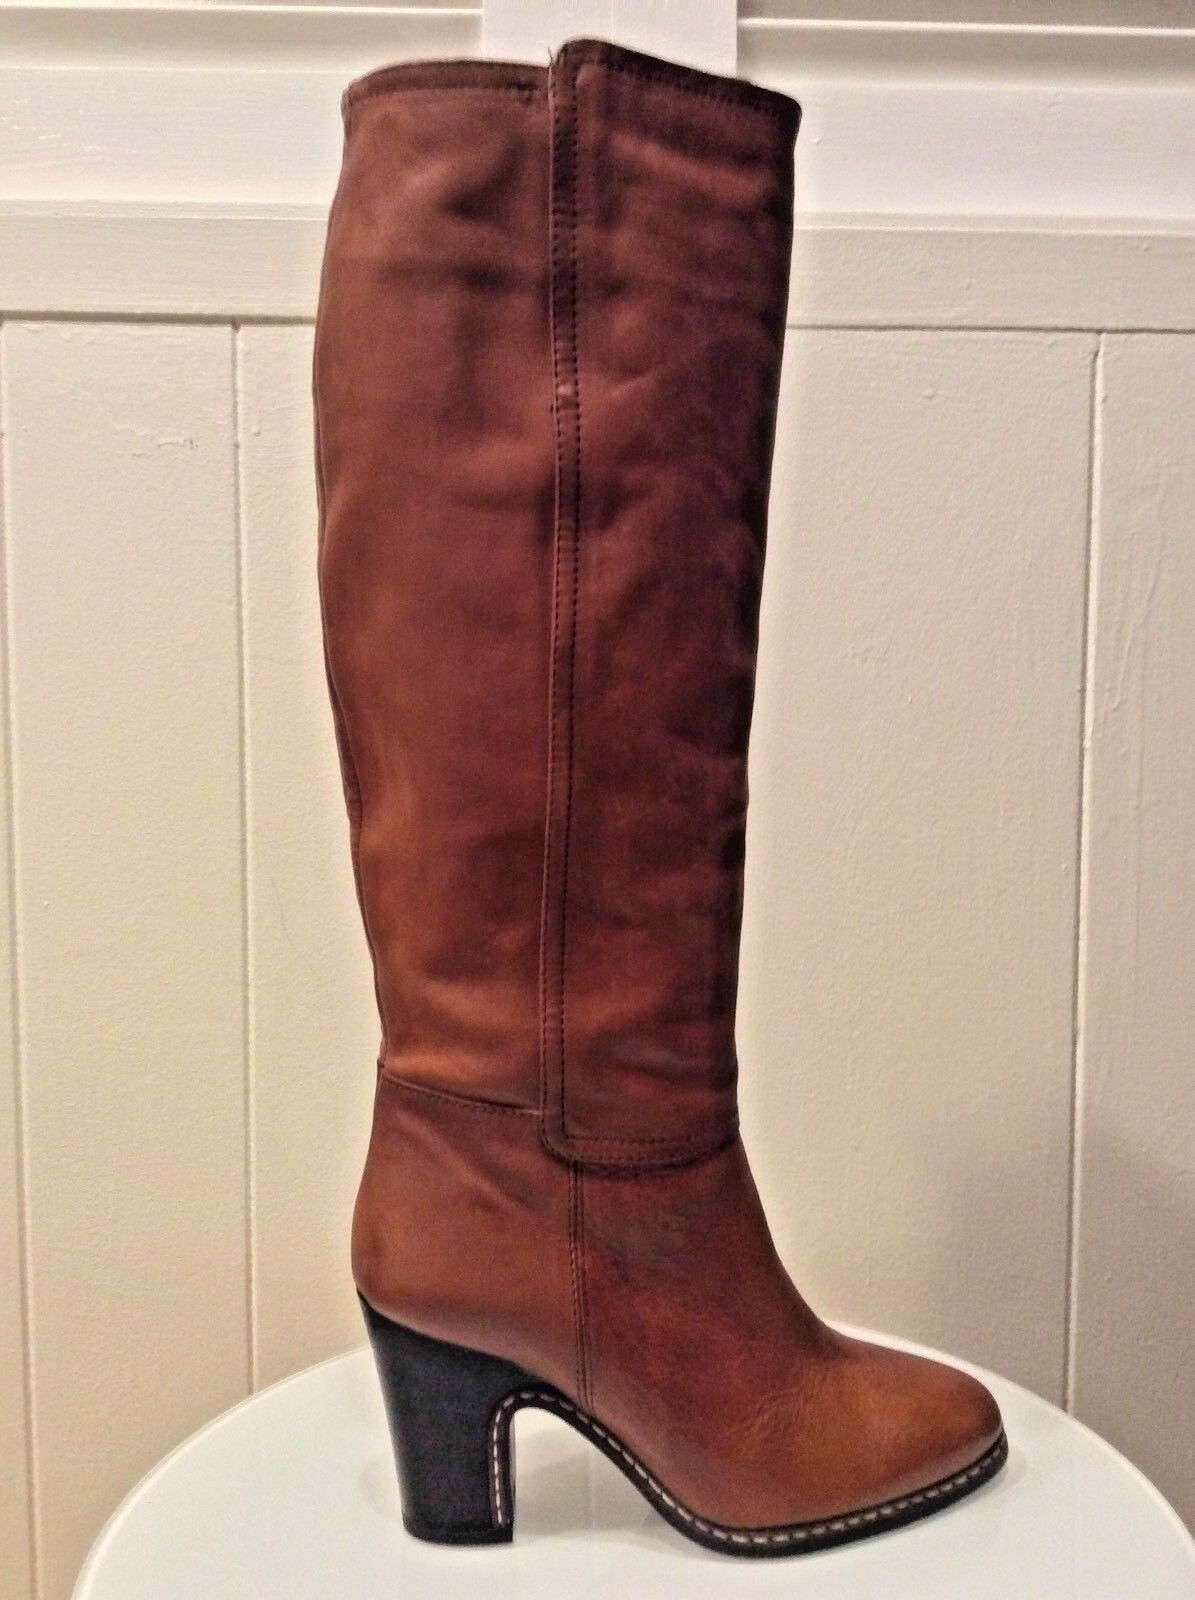 LIEBESKIND BERLIN Cognac Brown Leather Knee High Boots Size US 6 NWOB